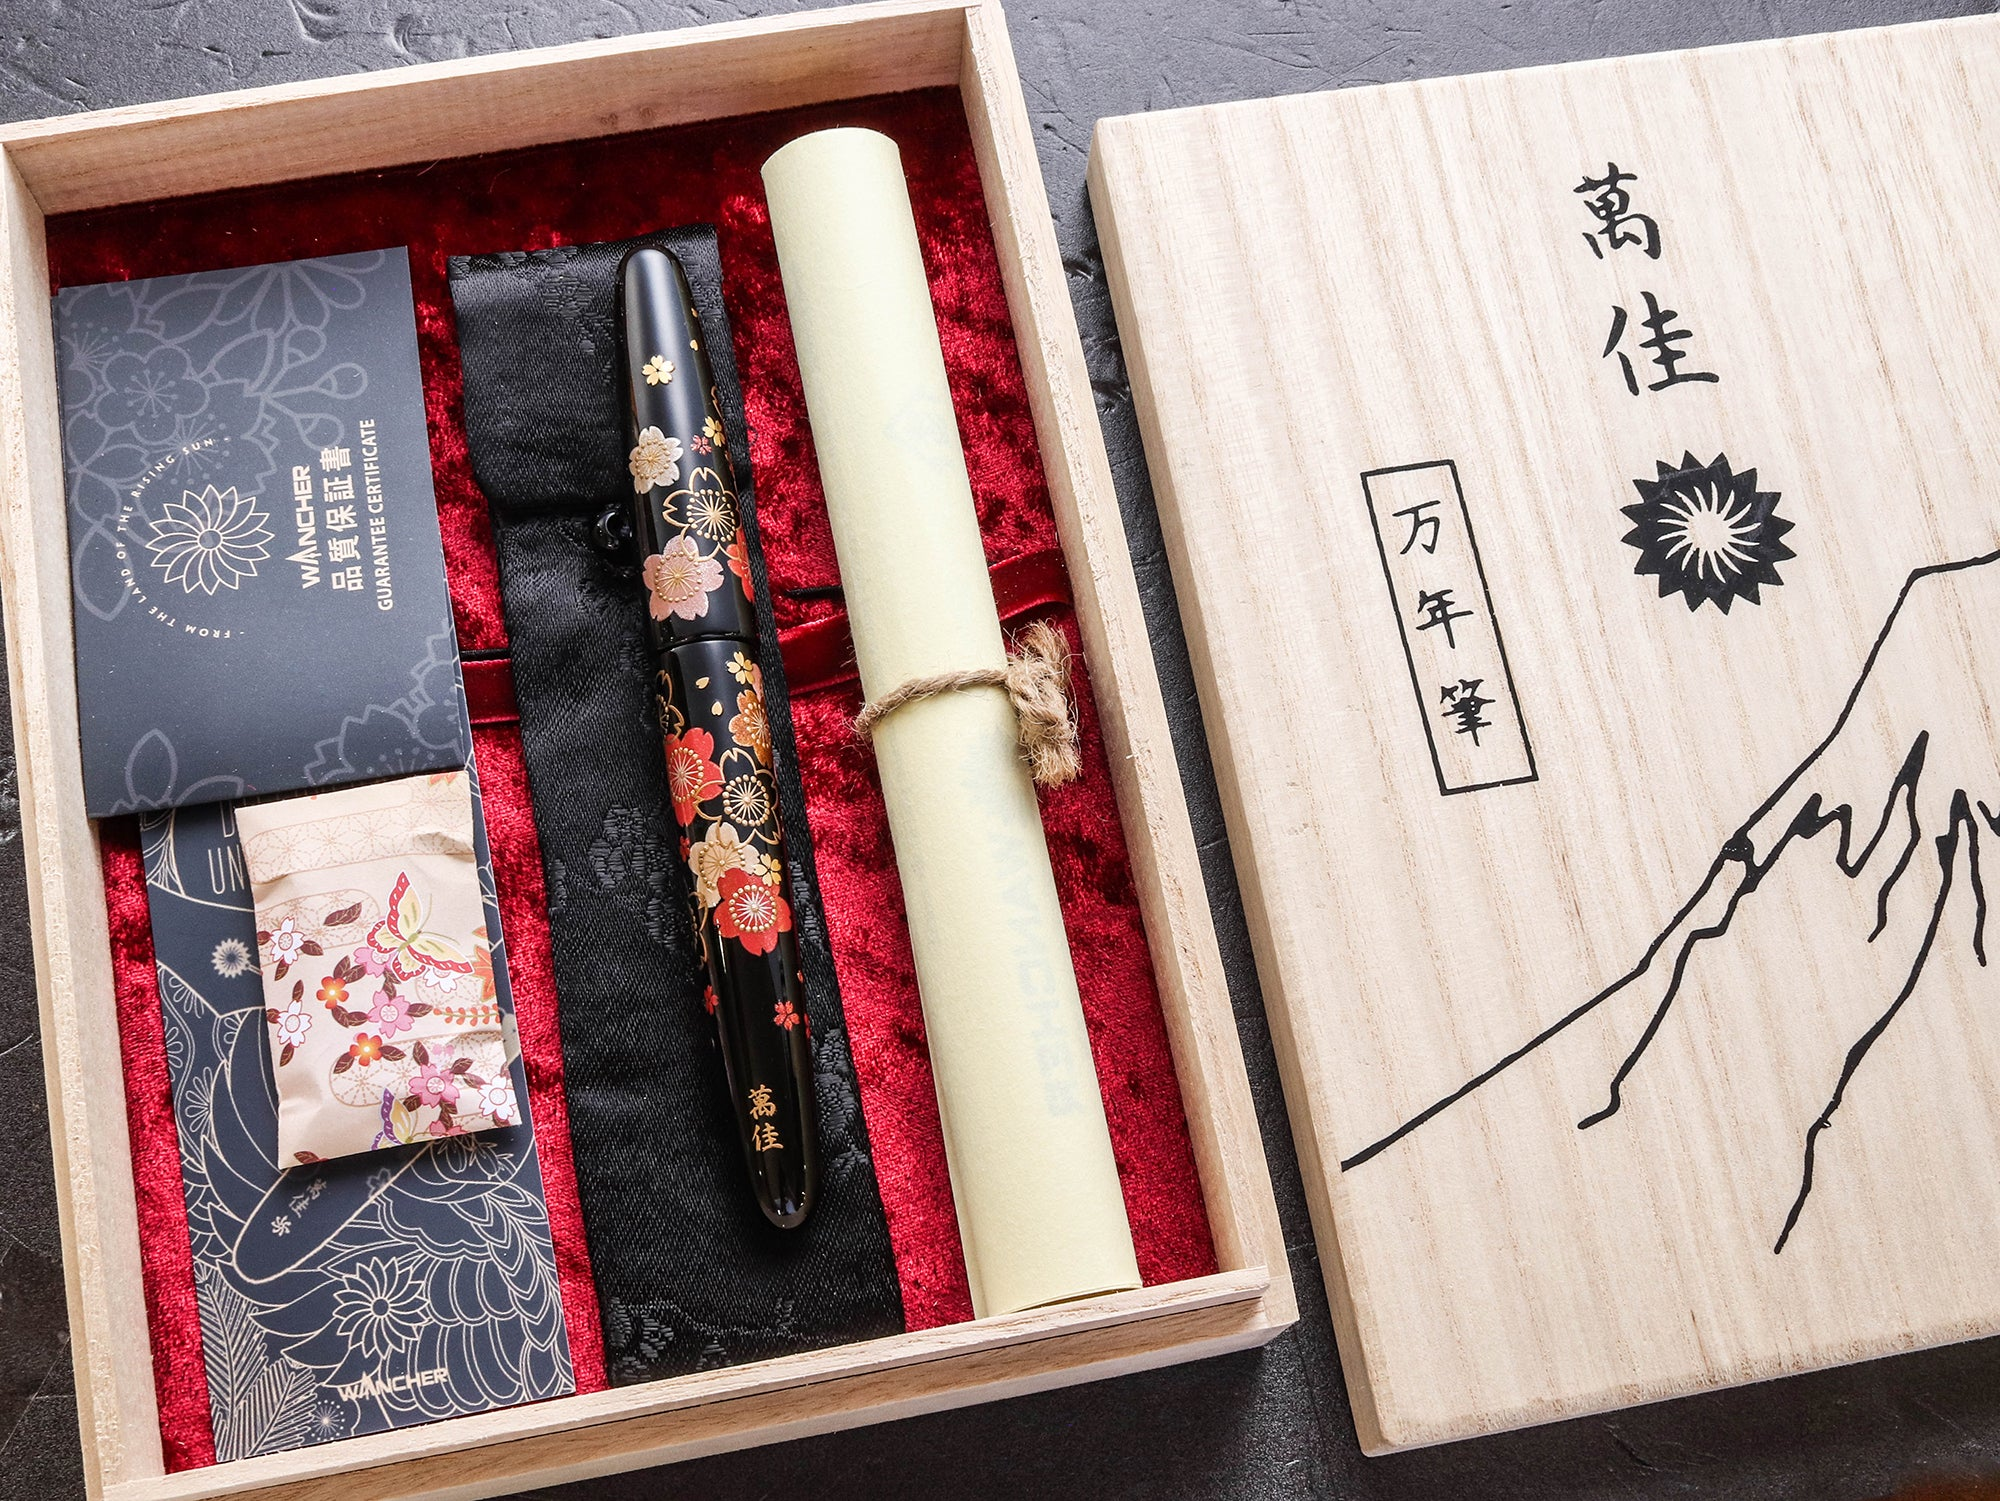 True Maki-e - 桜 - Sakura Fountain Pen - Wancher Pen